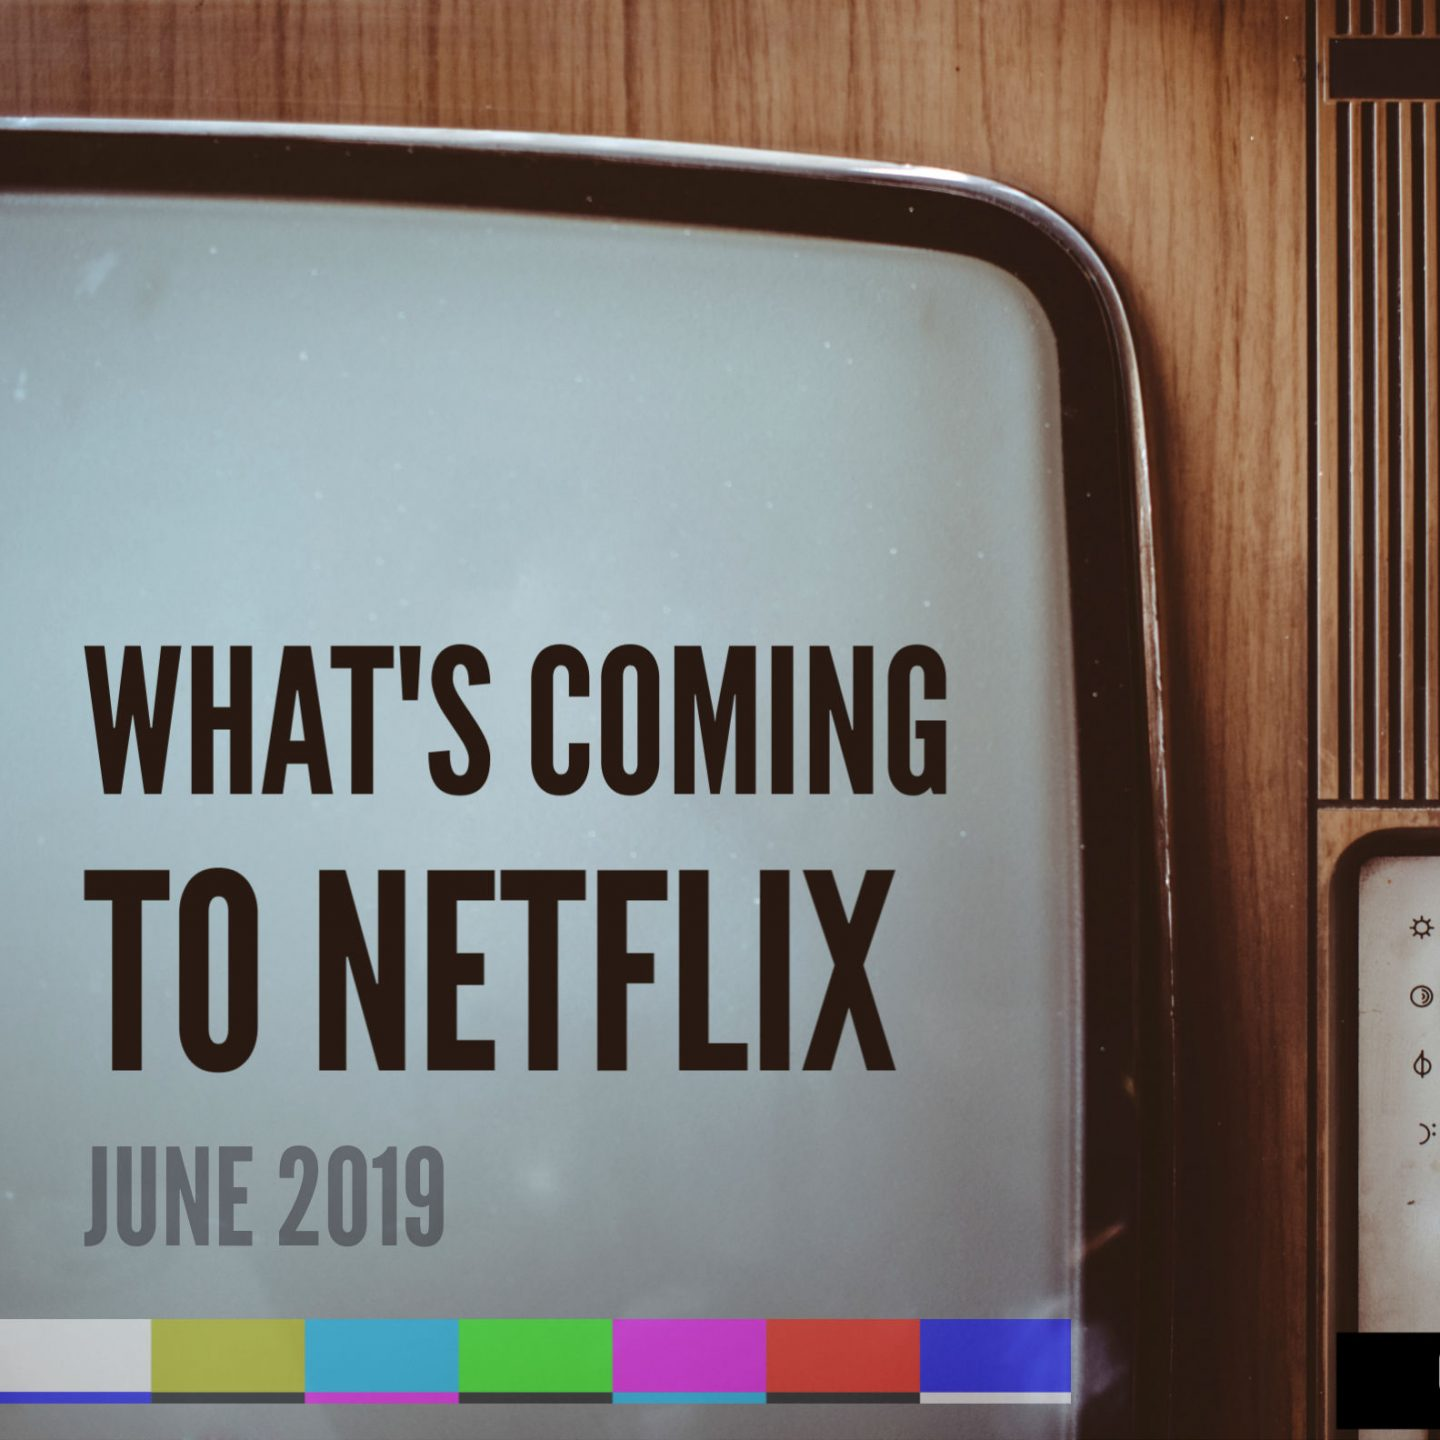 What's coming to Netflix: June 2019